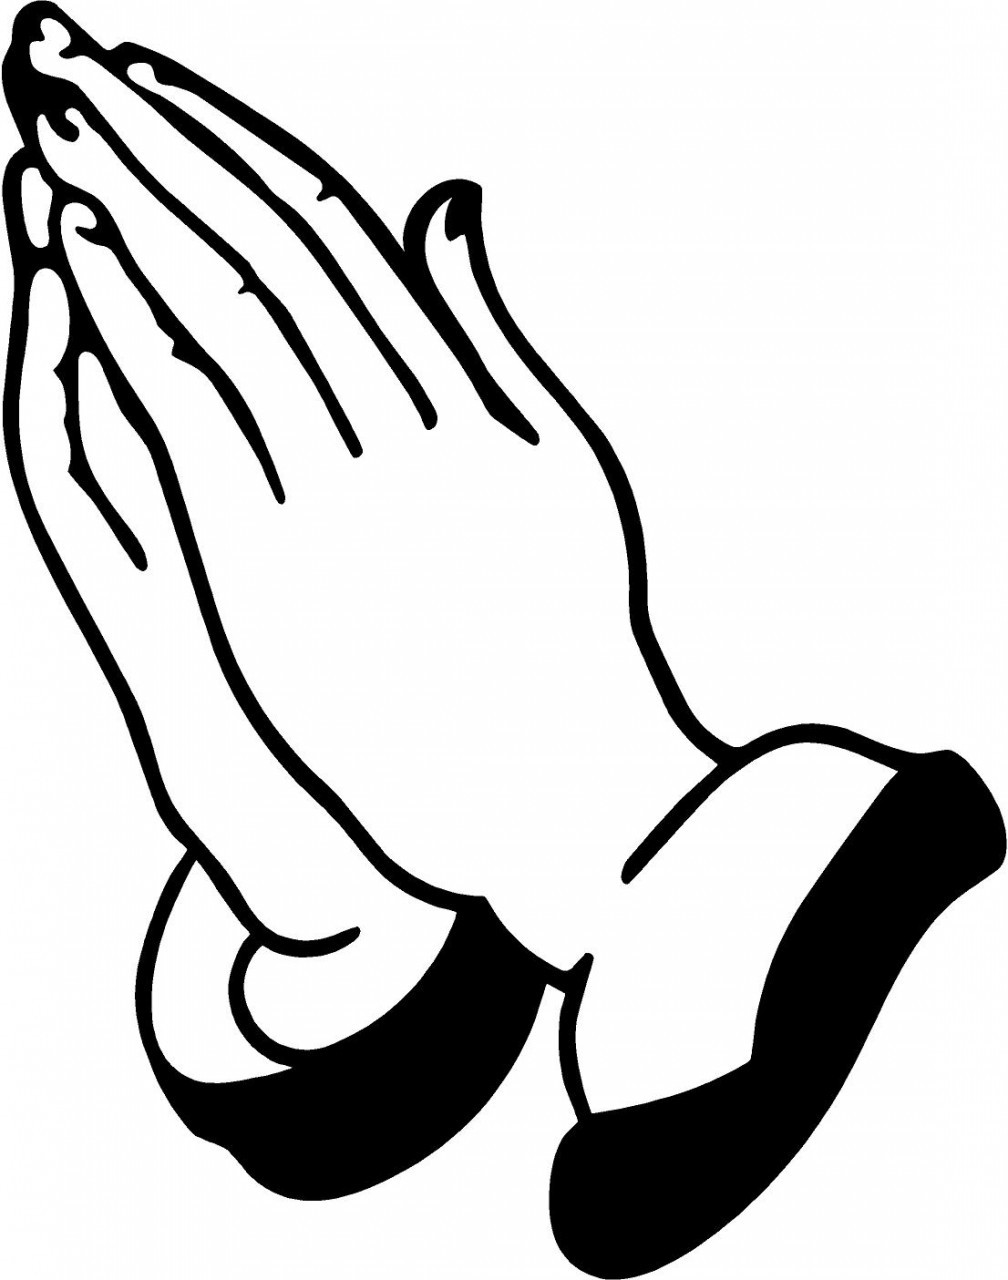 Praying hands prayer hands clipart free clipart images